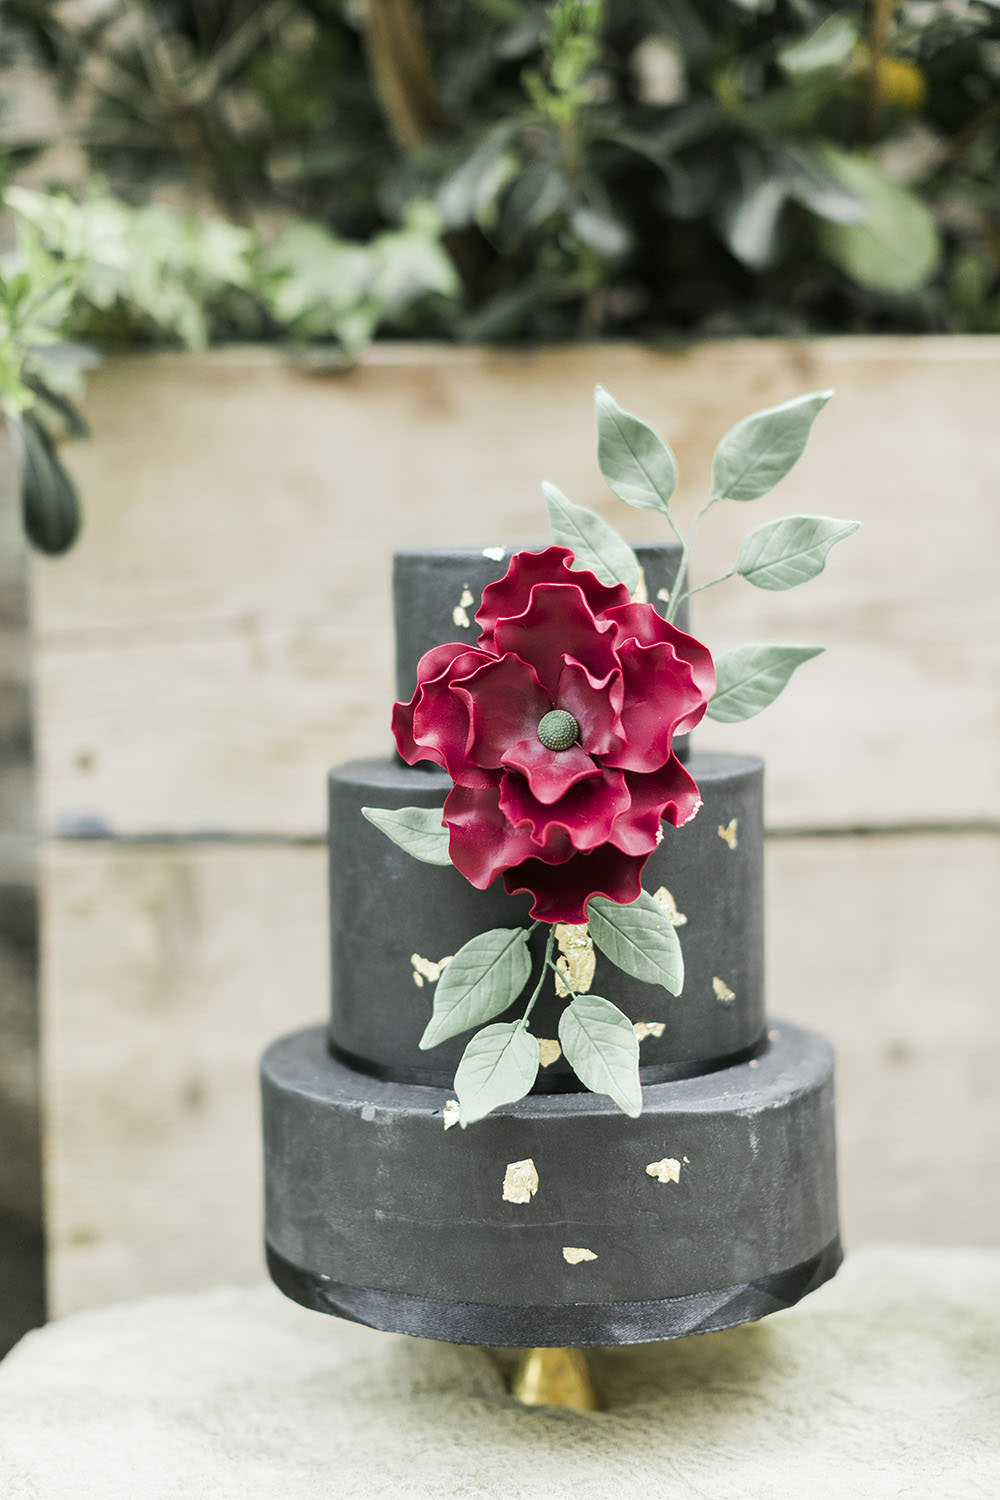 Black Red Cake Metallic Floral Greenery Burgundy Gold Wedding Ideas Sarah Porter Photography